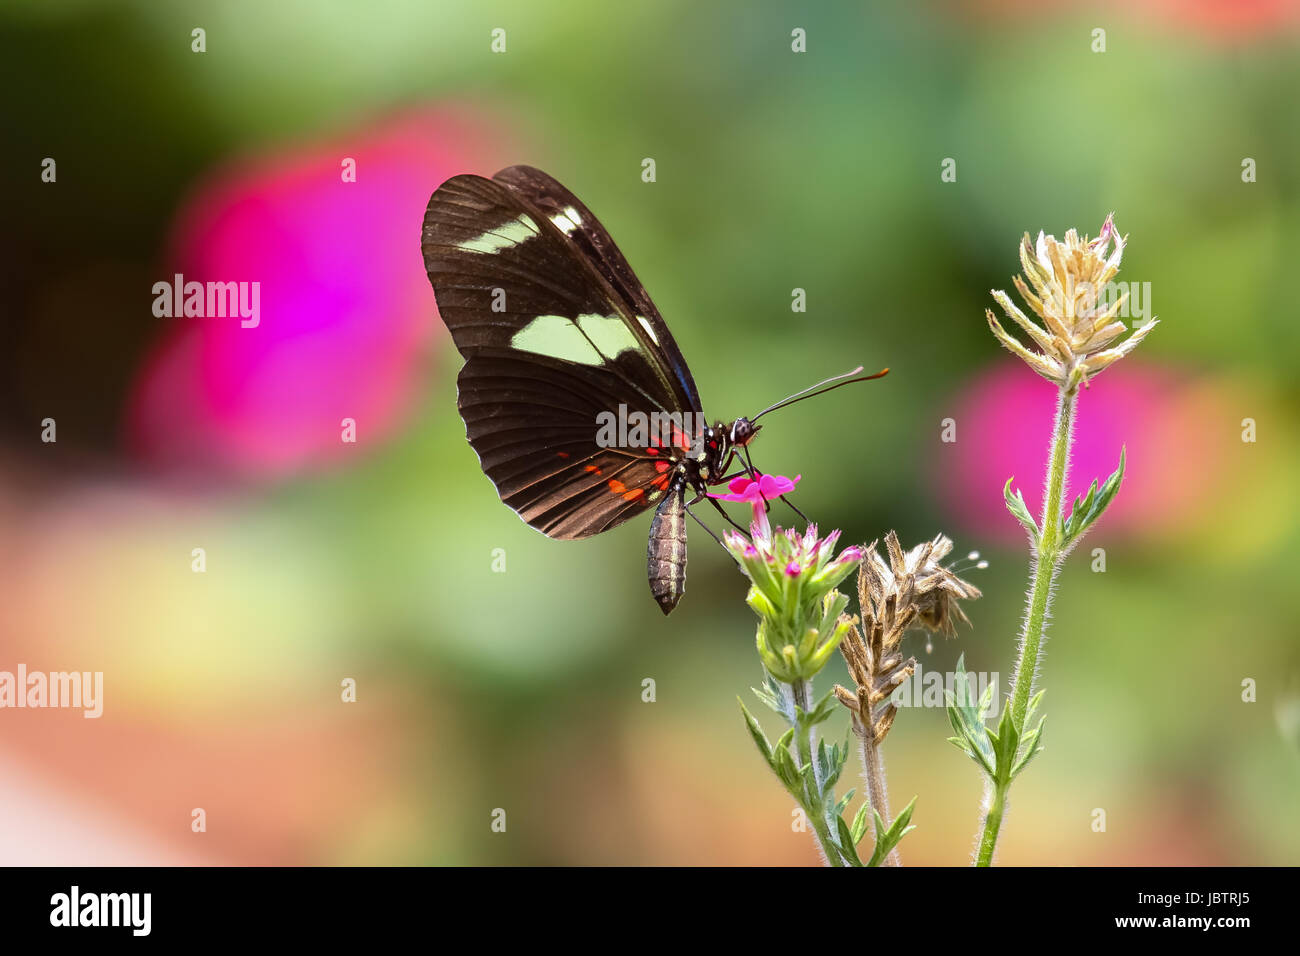 Close up of butterfly Heliconius cydno galanthus on a flower, Amazon, Brazil - Stock Image